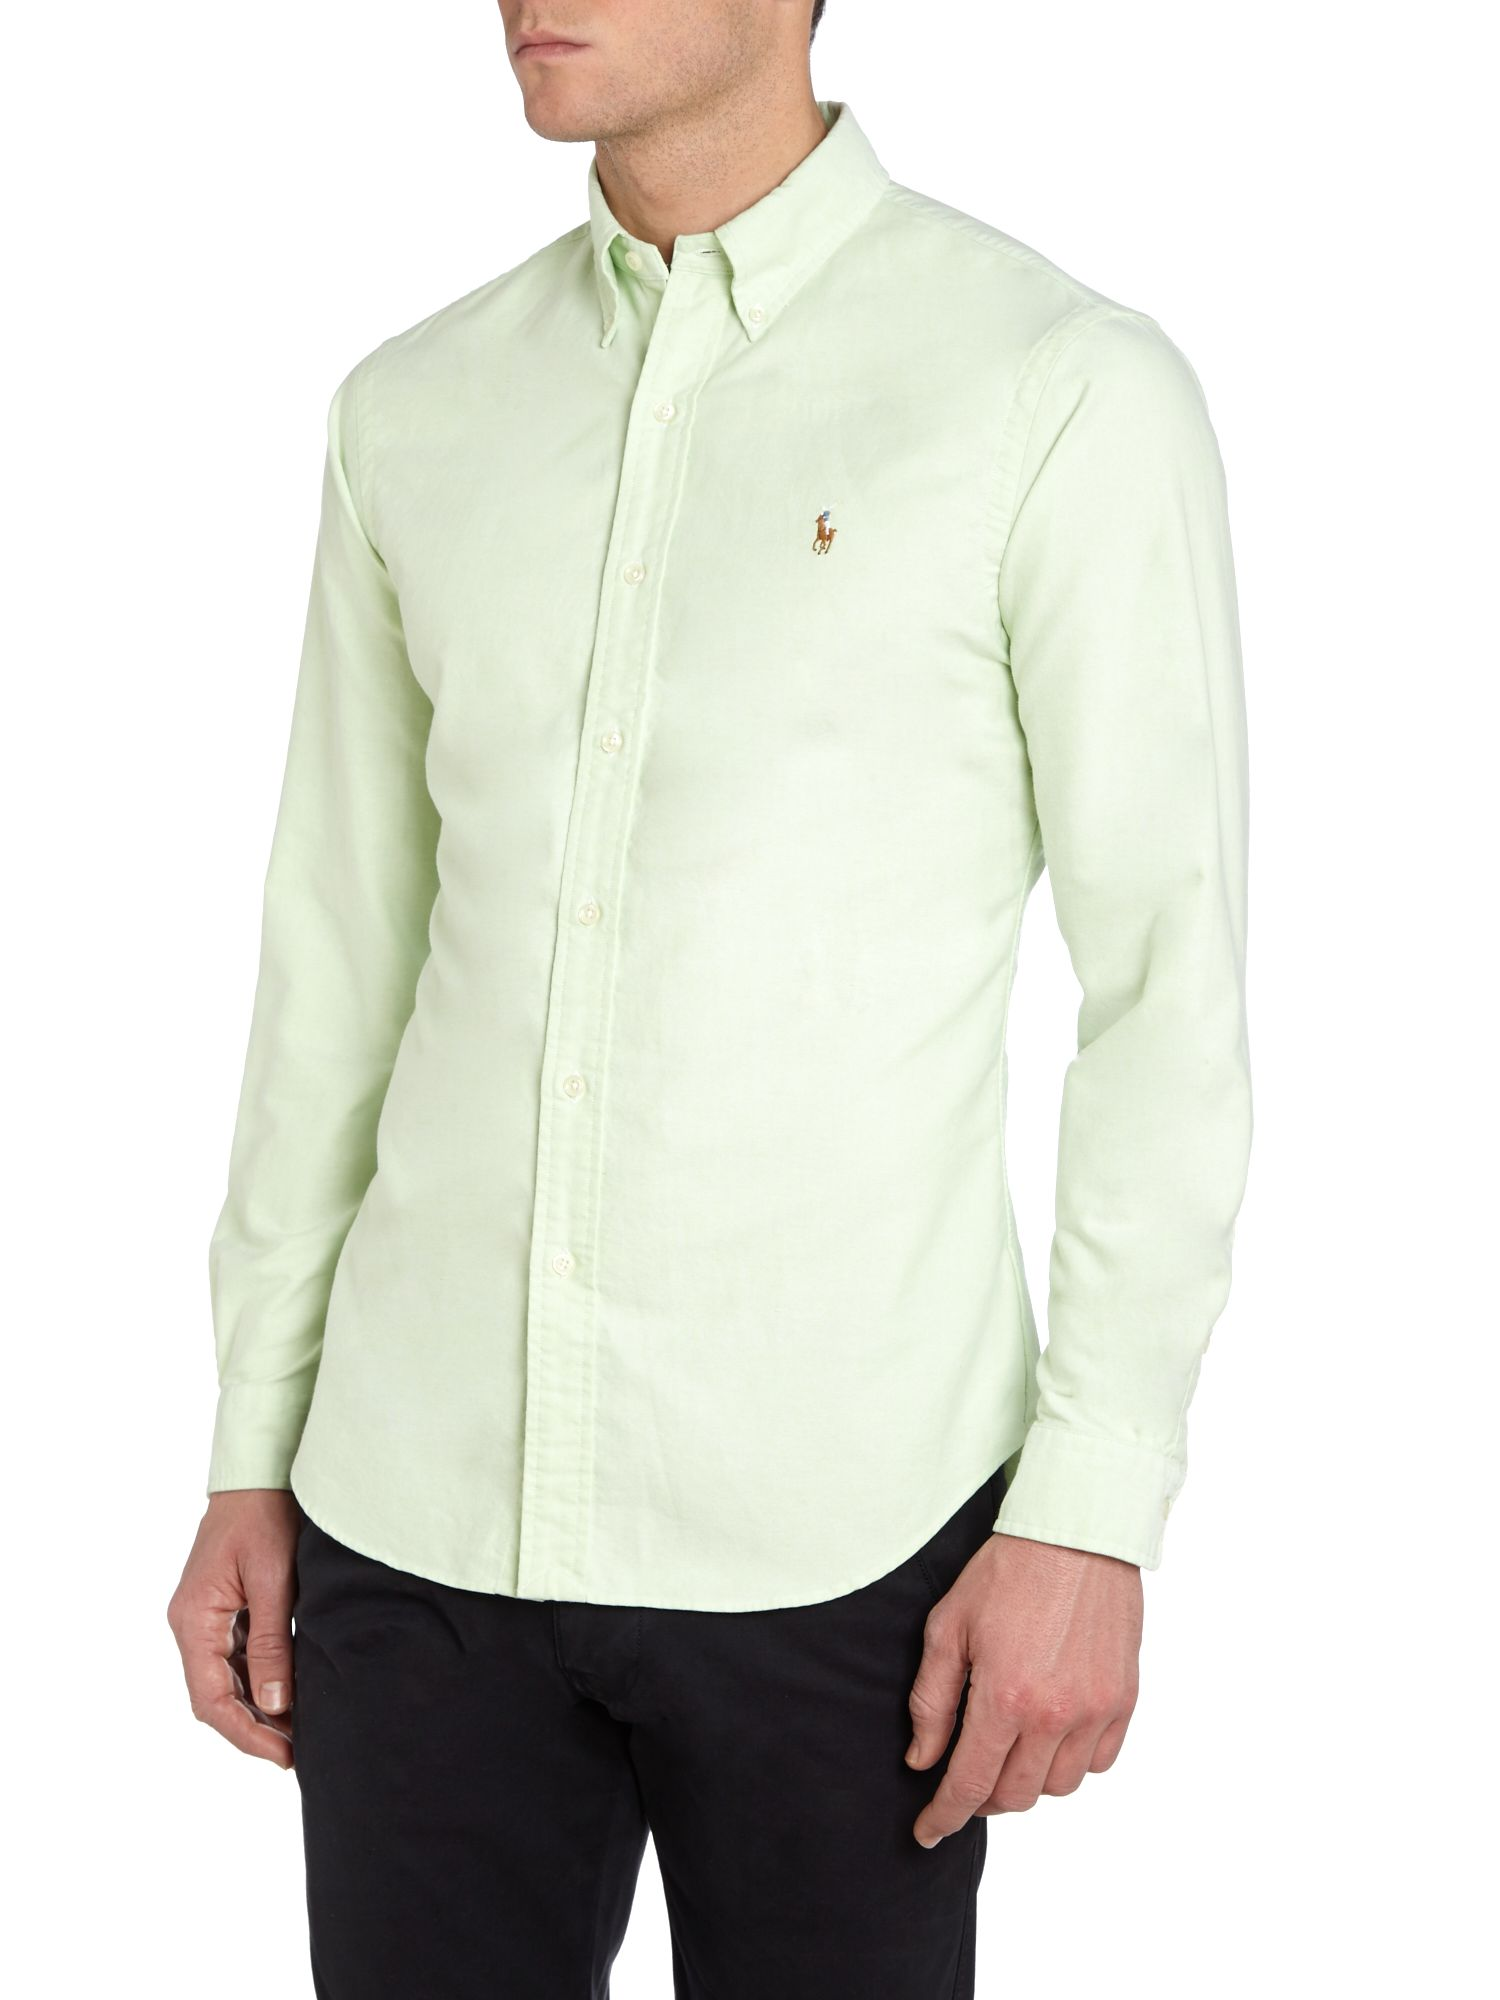 Classic slim fit long sleeve shirt